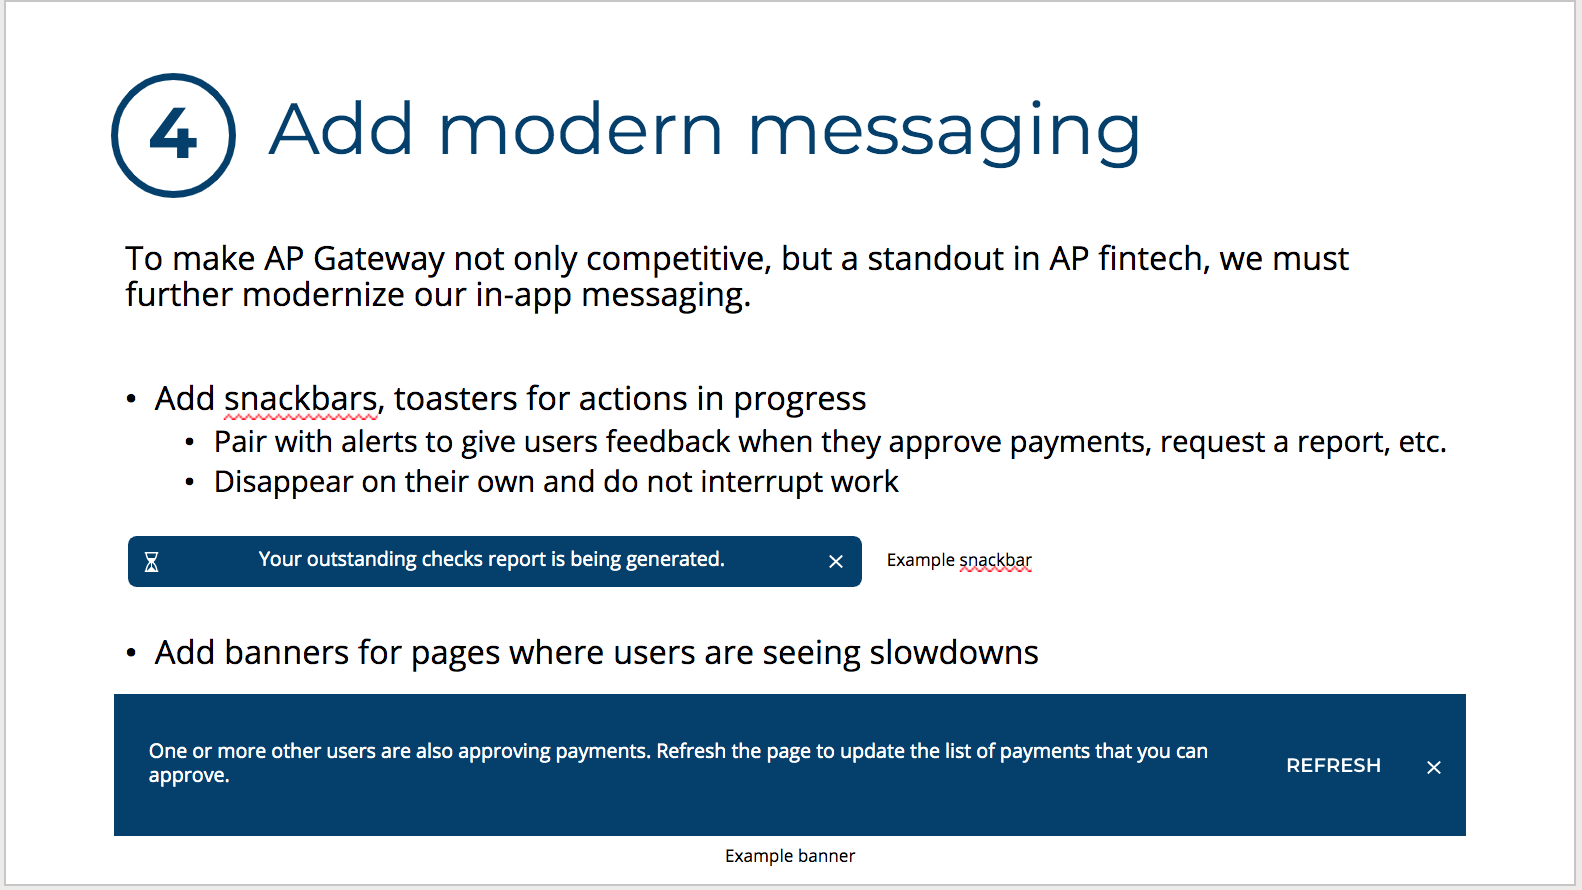 Sitewide Messaging